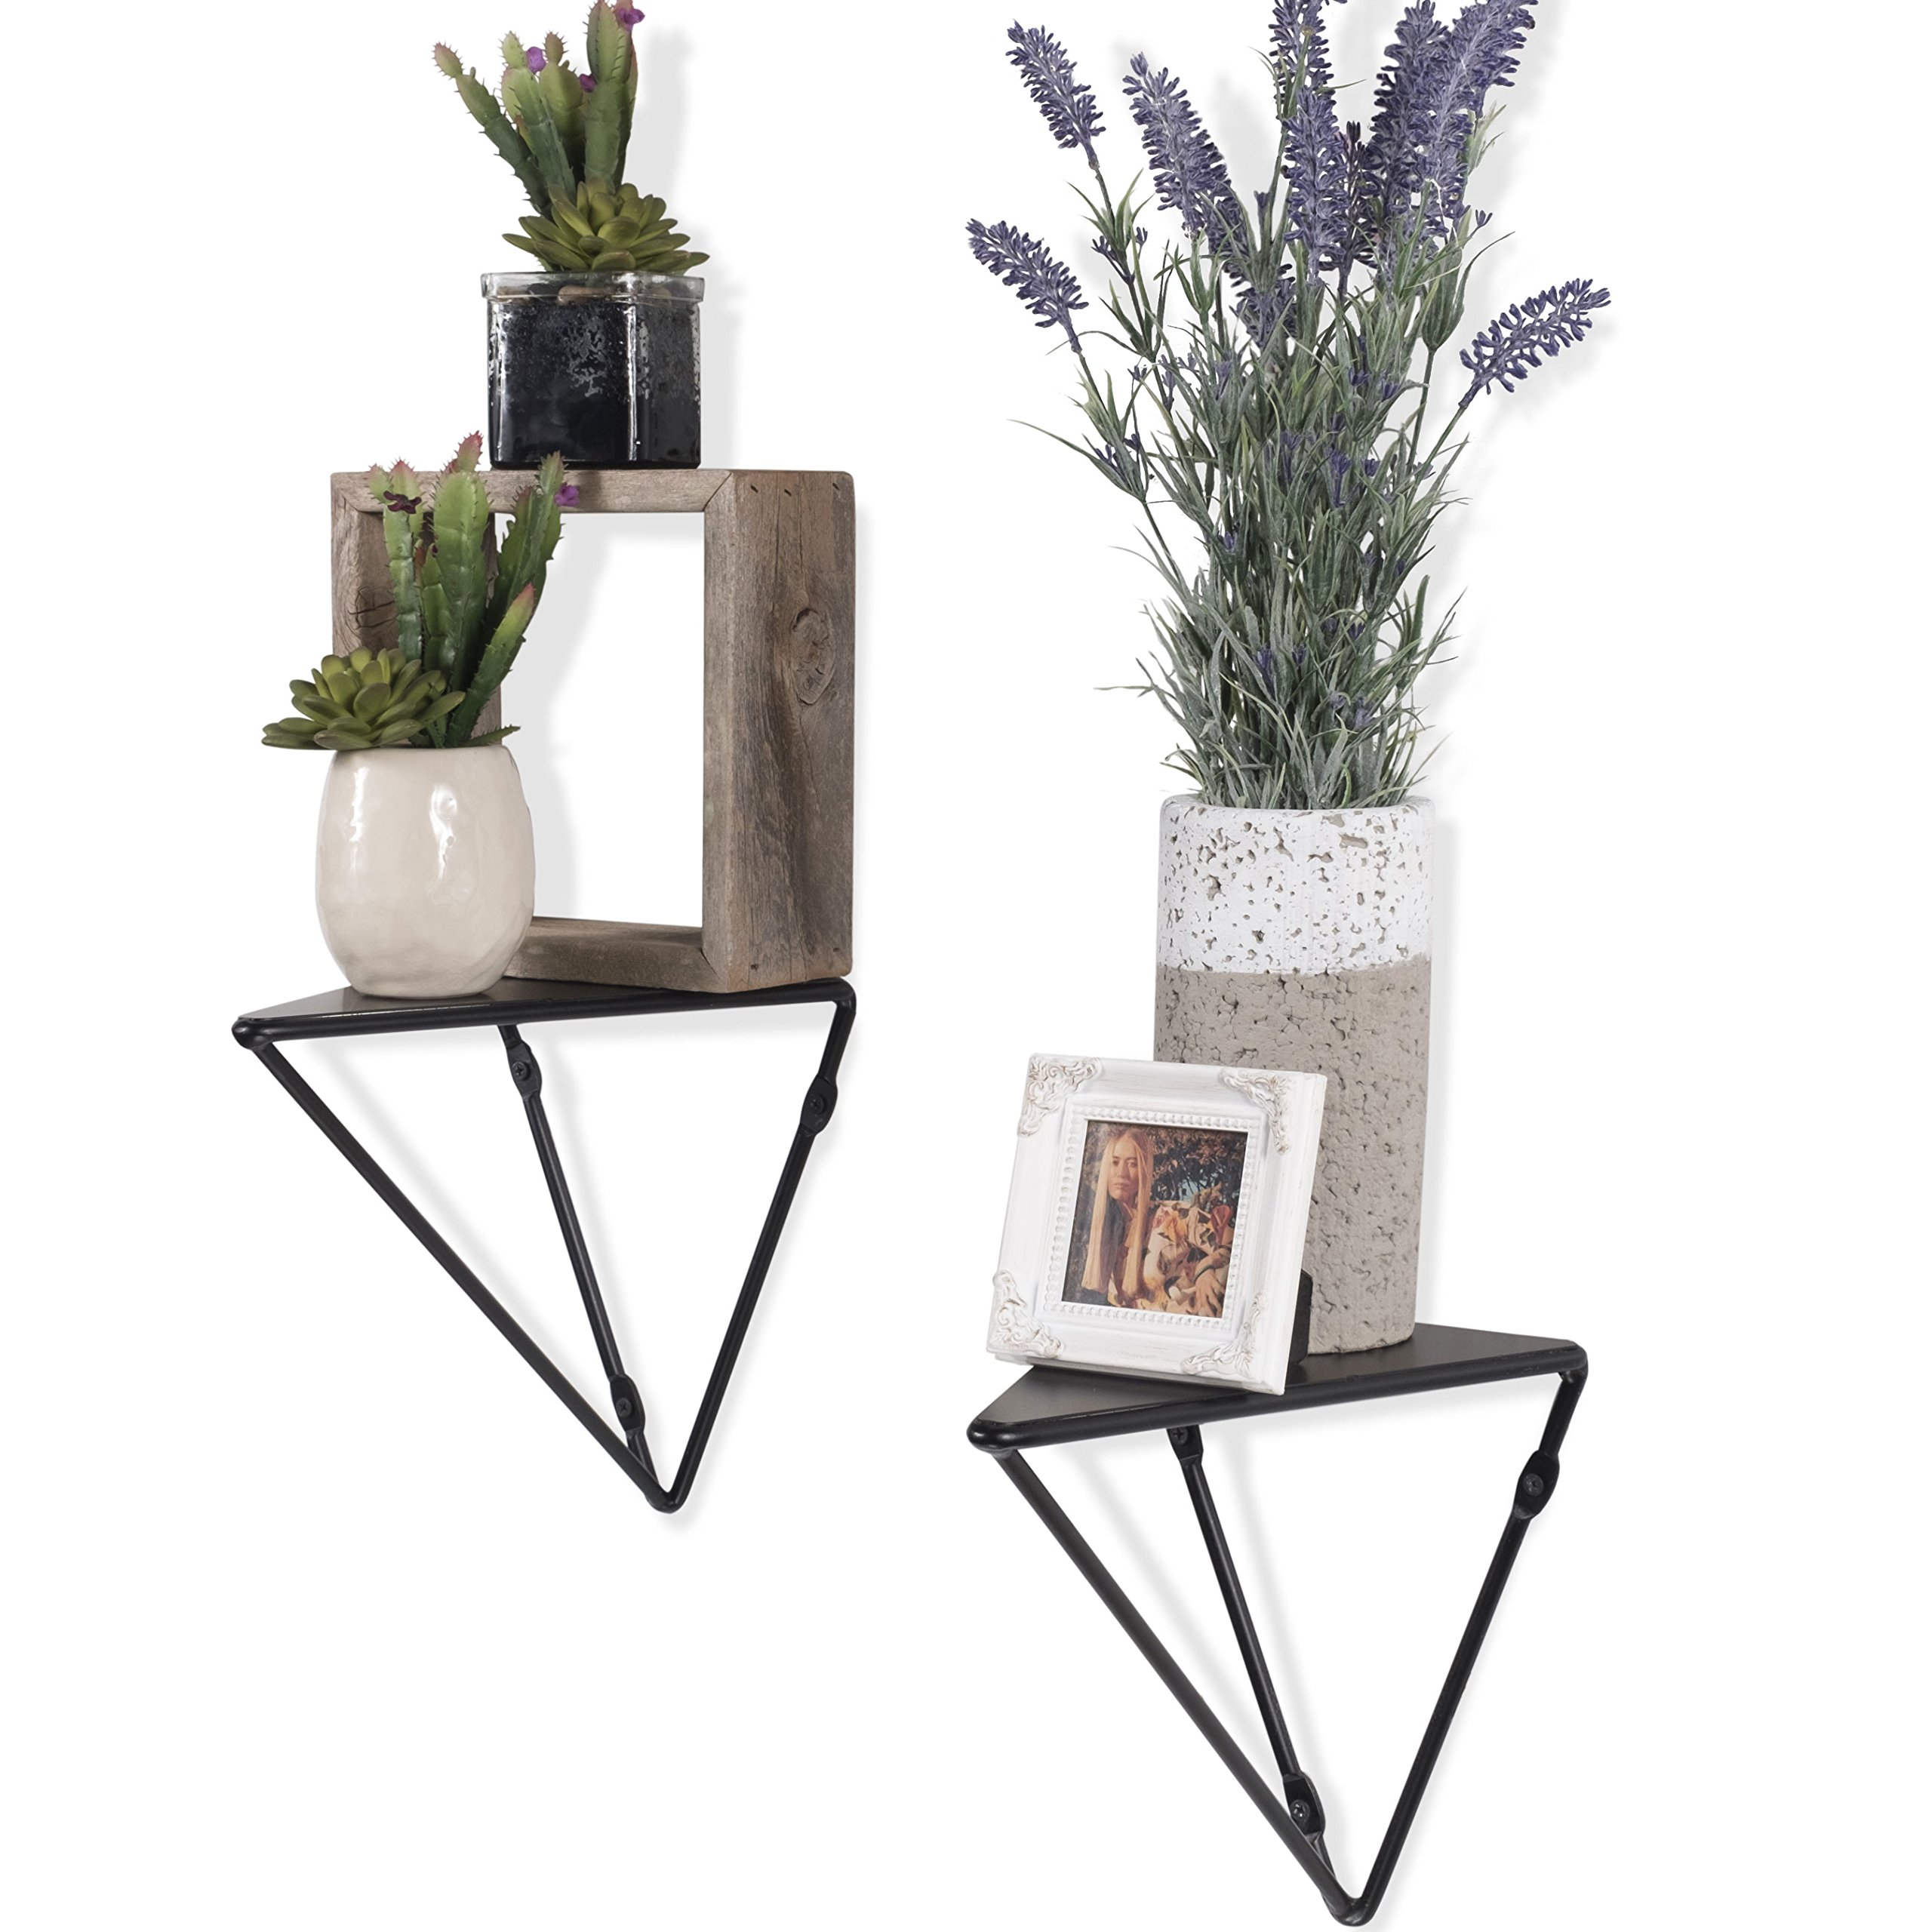 Wallniture Prismo Geometric Floating Decor Shelf – Wall Mount Multi-Use Plant Pot Collectibles Figures Triangle Iron Brackets Black Set of 2 by Wallniture